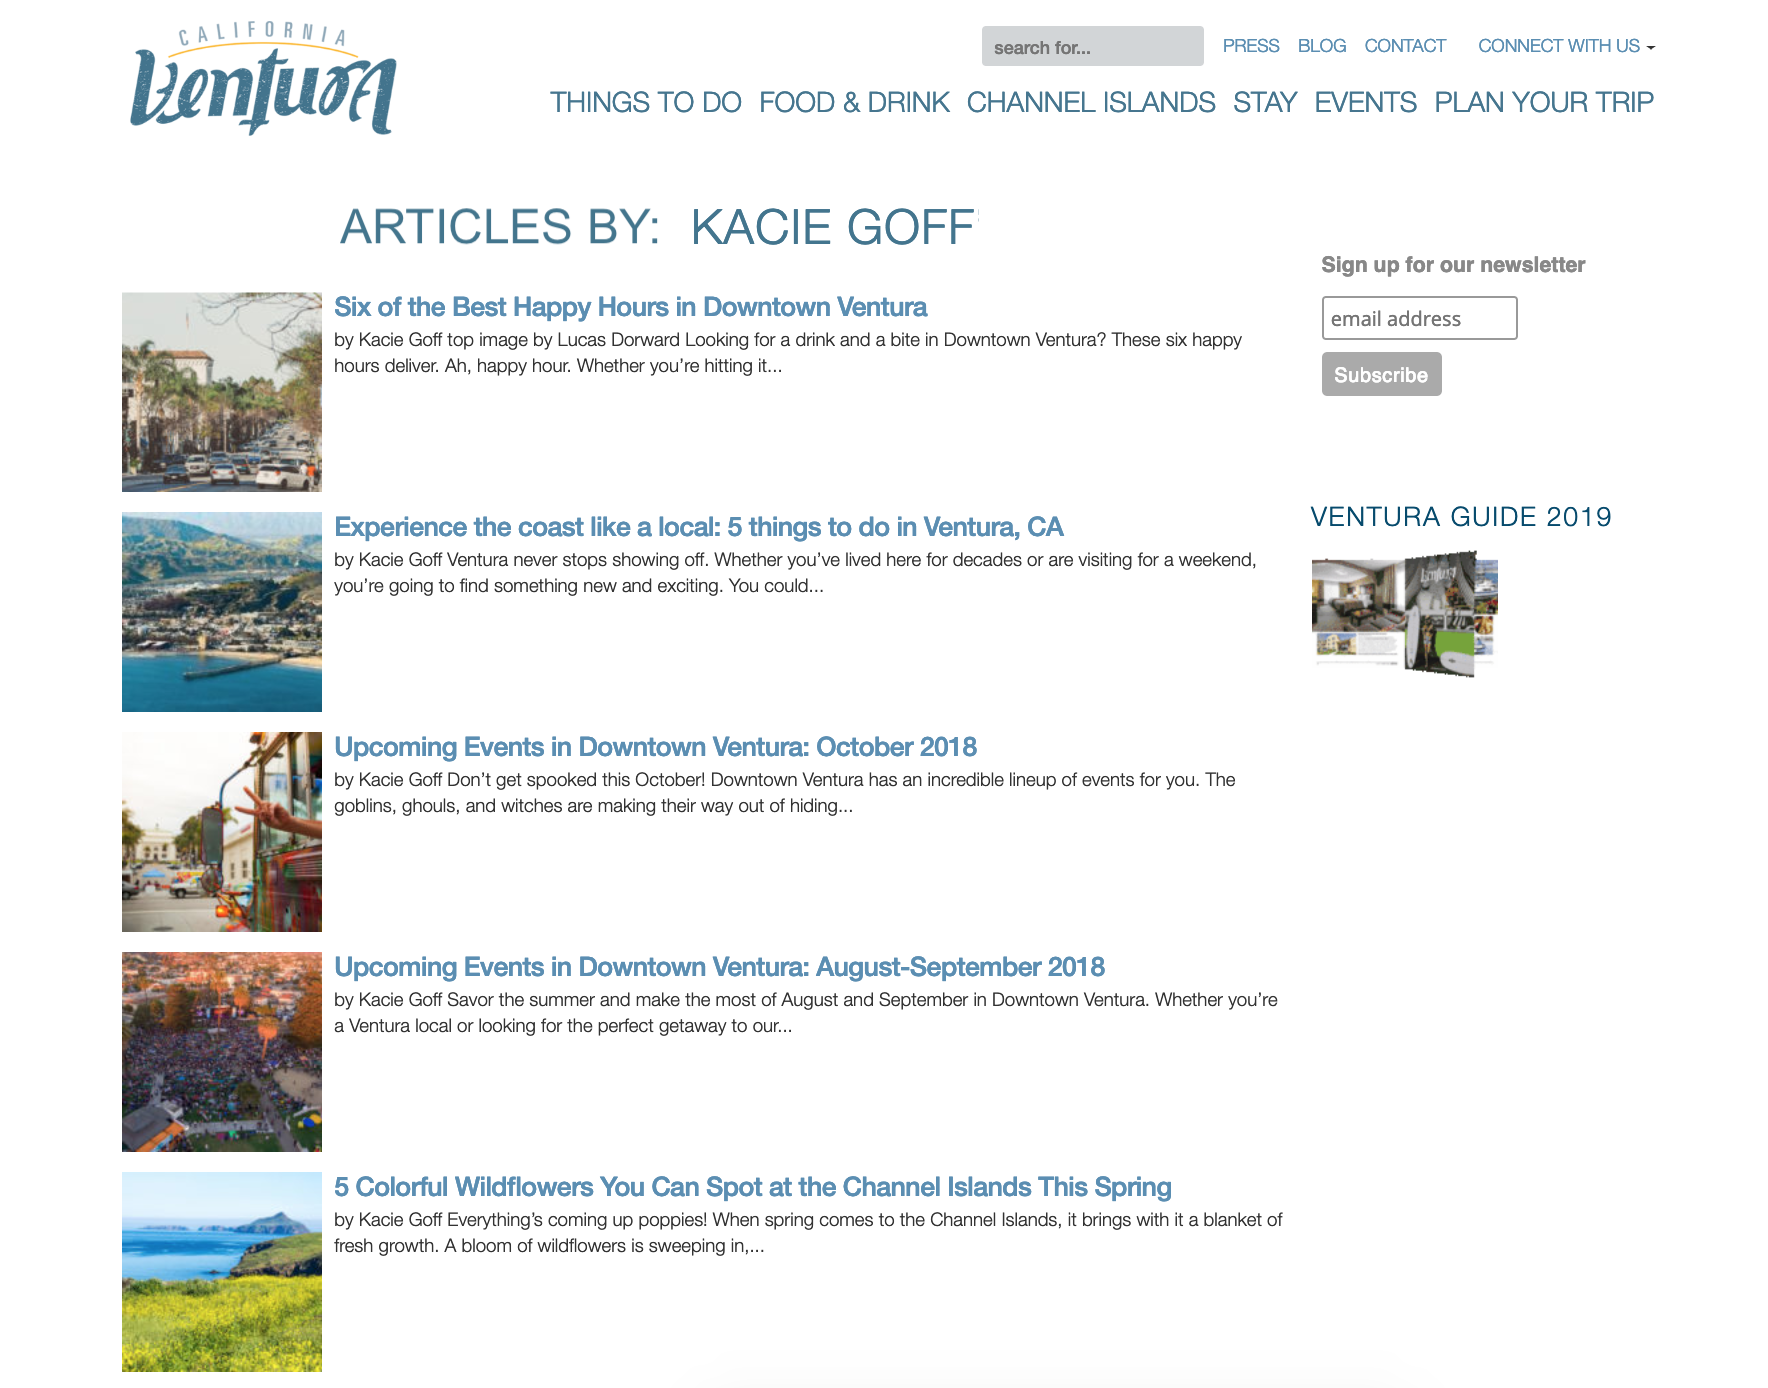 ARTICLES: VISIT VENTURA - I love my town. It's been a true pleasure to write content for Visit Ventura to help highlight some of the best parts of our amazing community, like killer happy hours and colorful wildflowers. Read more.